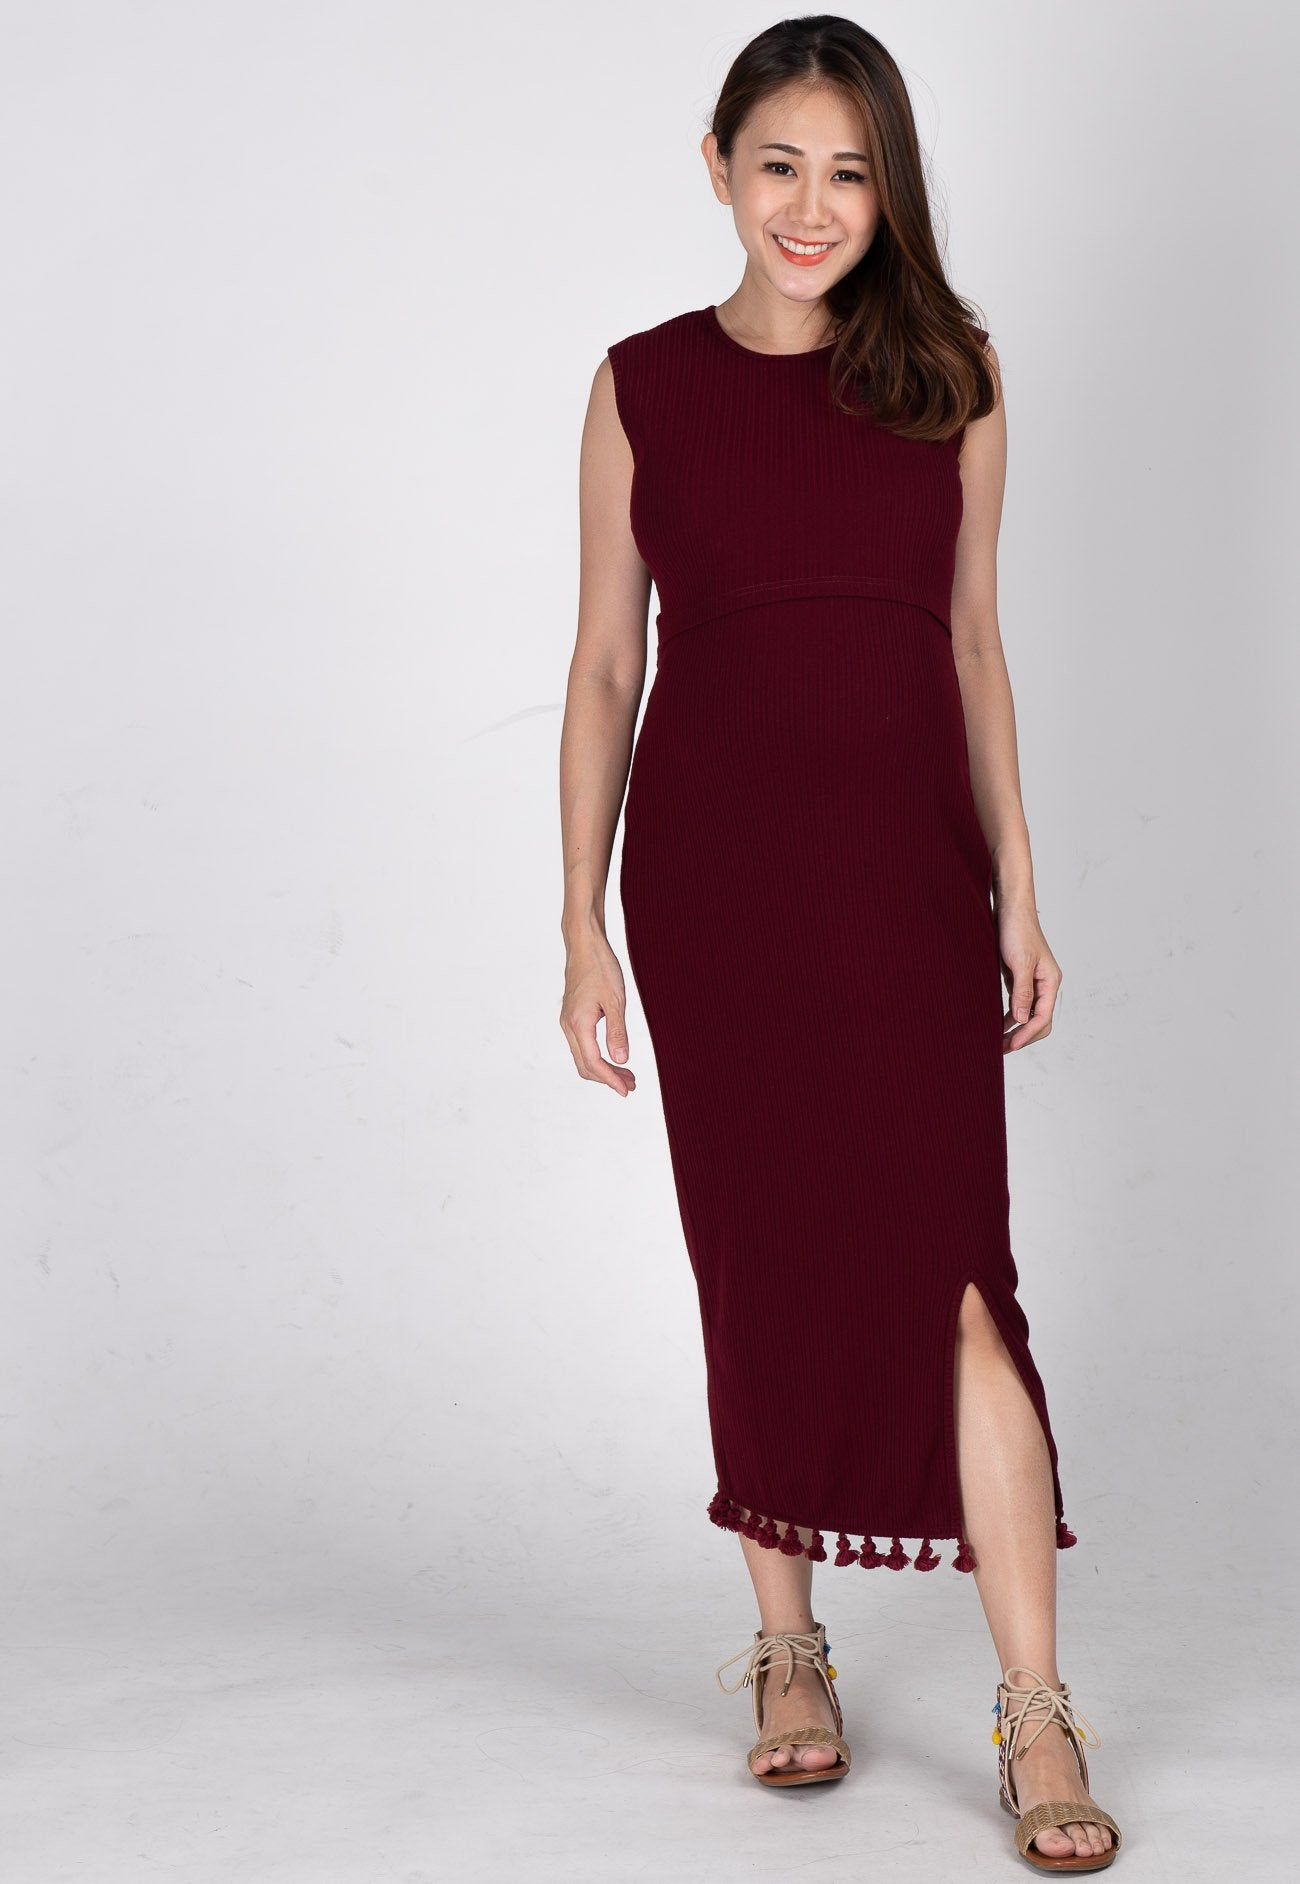 Mothercot Drop Tasseled Midi Nursing Dress in Red  by JumpEatCry - Maternity and nursing wear